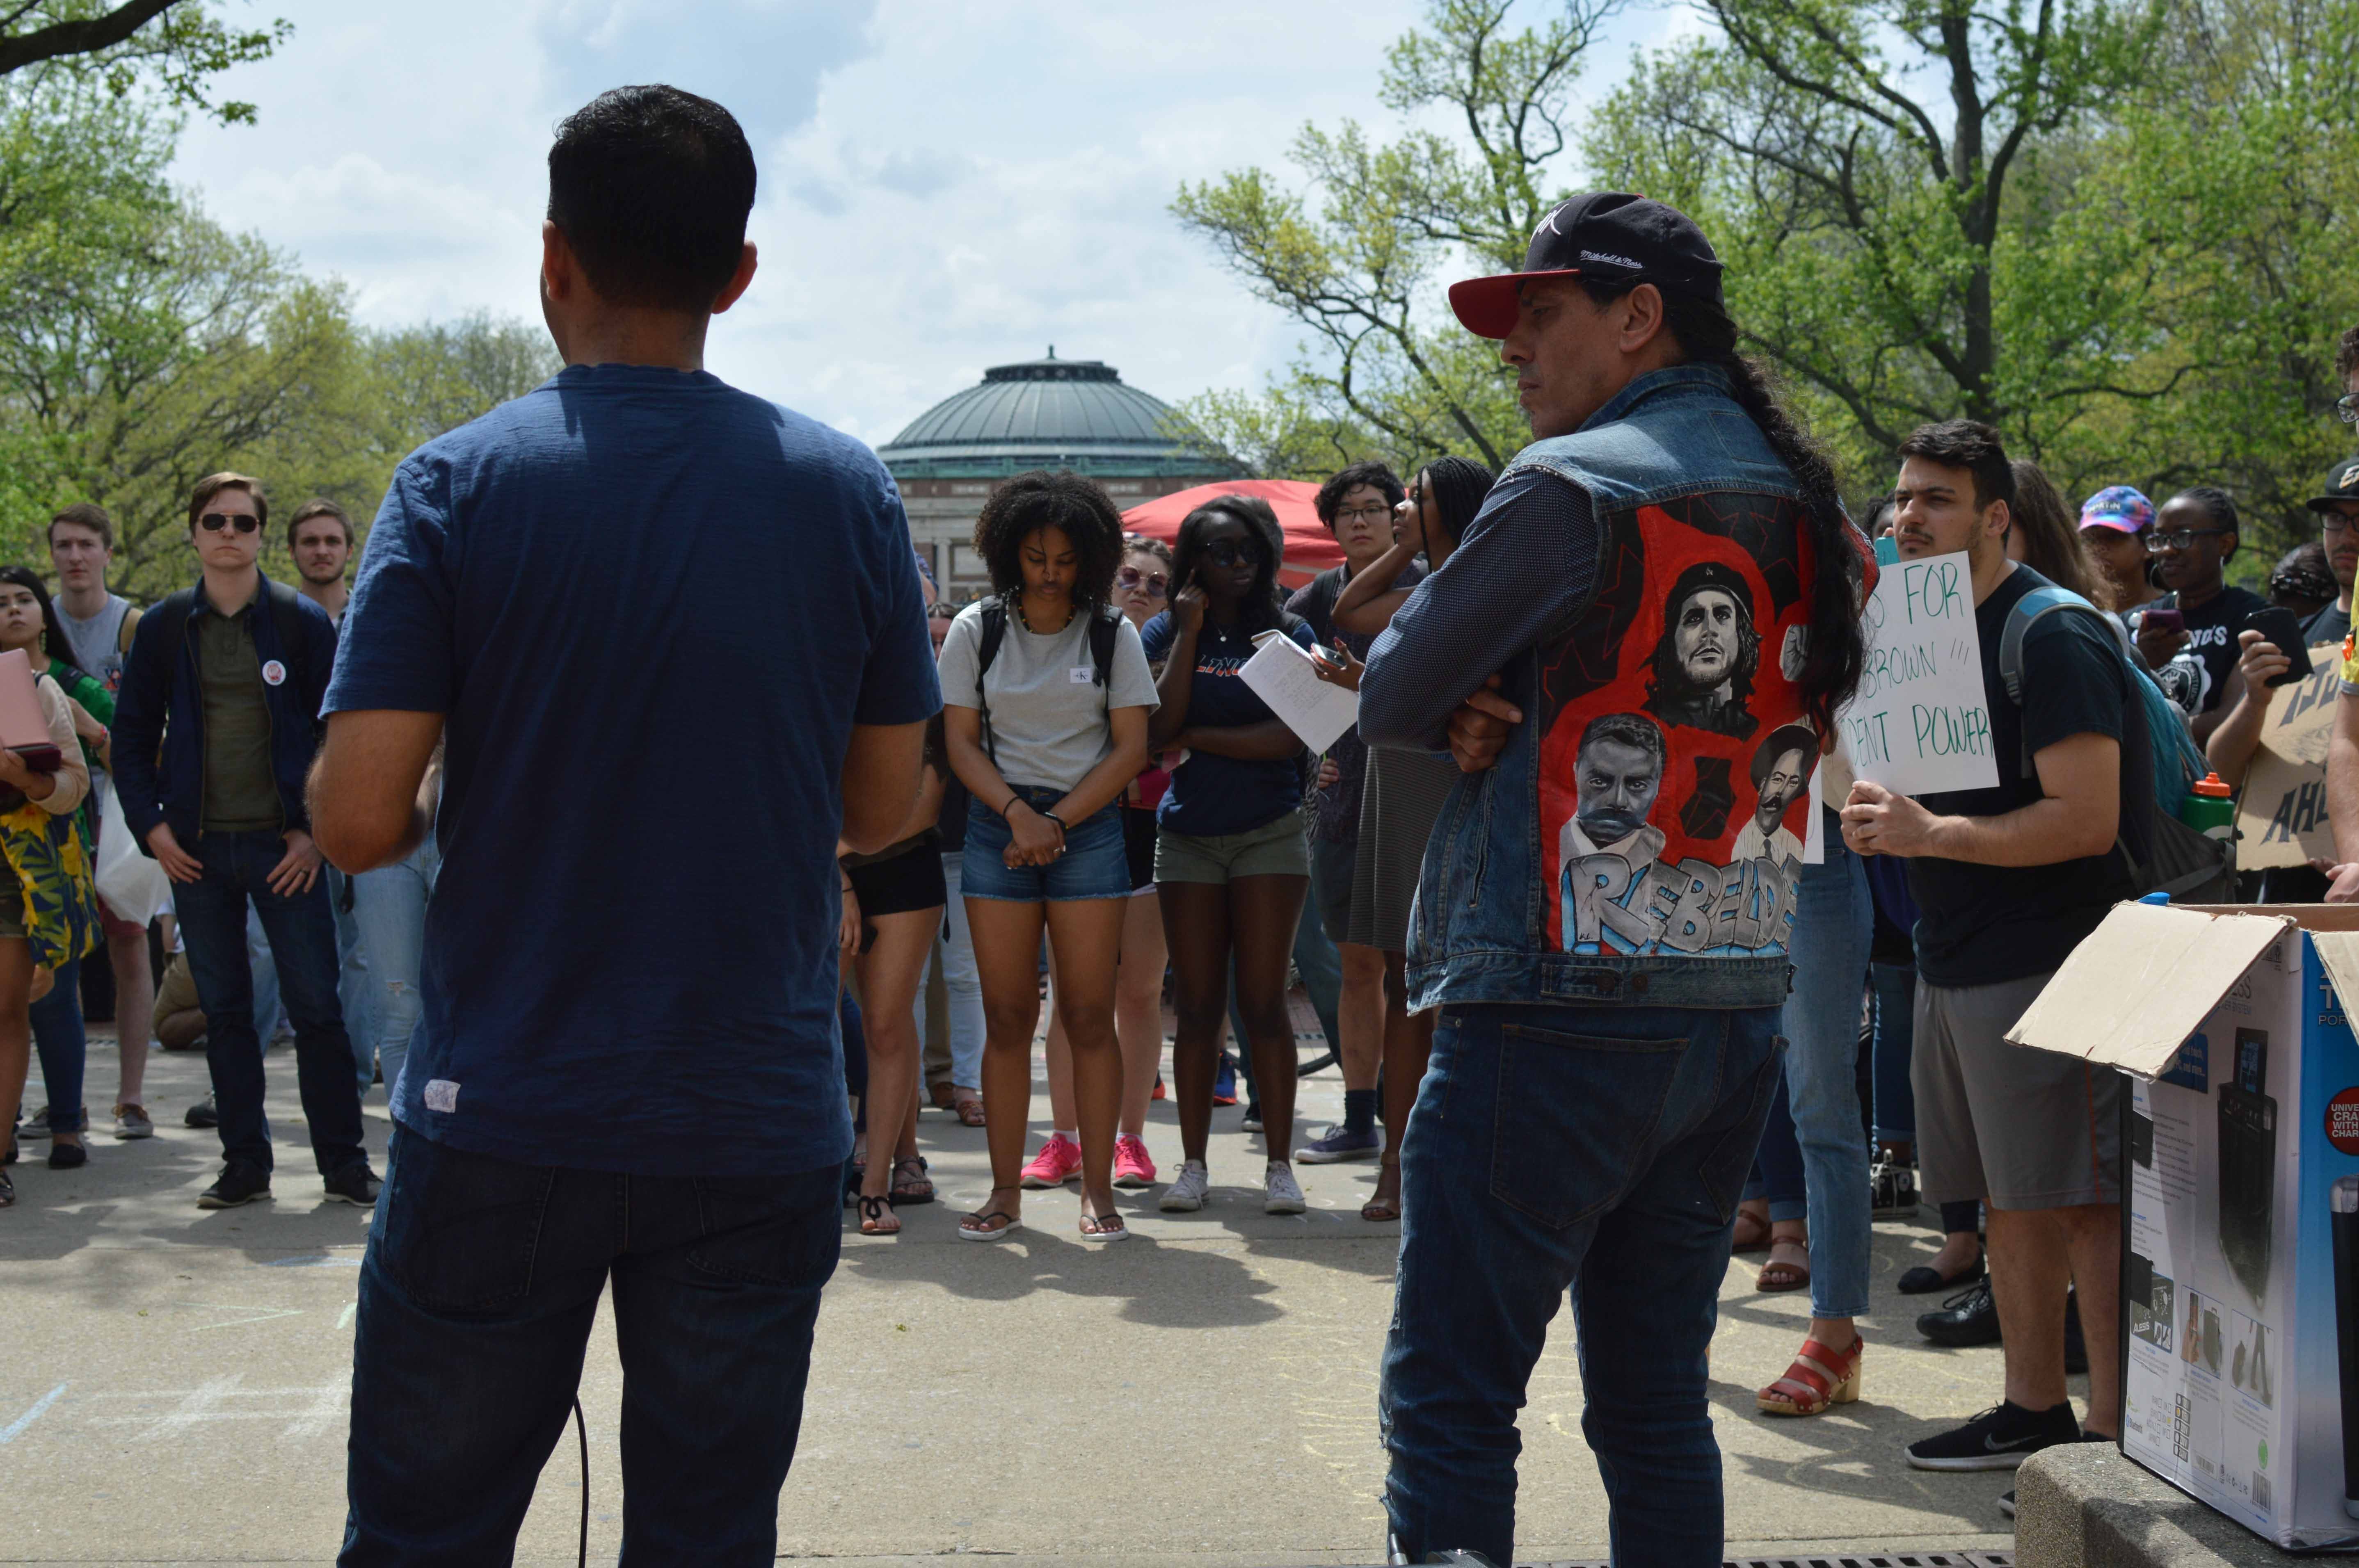 Julio Villegas and Chuy Chavez, an original protester from 1992, speaks at a rally on the Main Quad on Wednesday. Students gathered to protest and voice demands originally made in 1992. Columnist Tatiana Rodriguez hopes the University will listen to protester's demands.